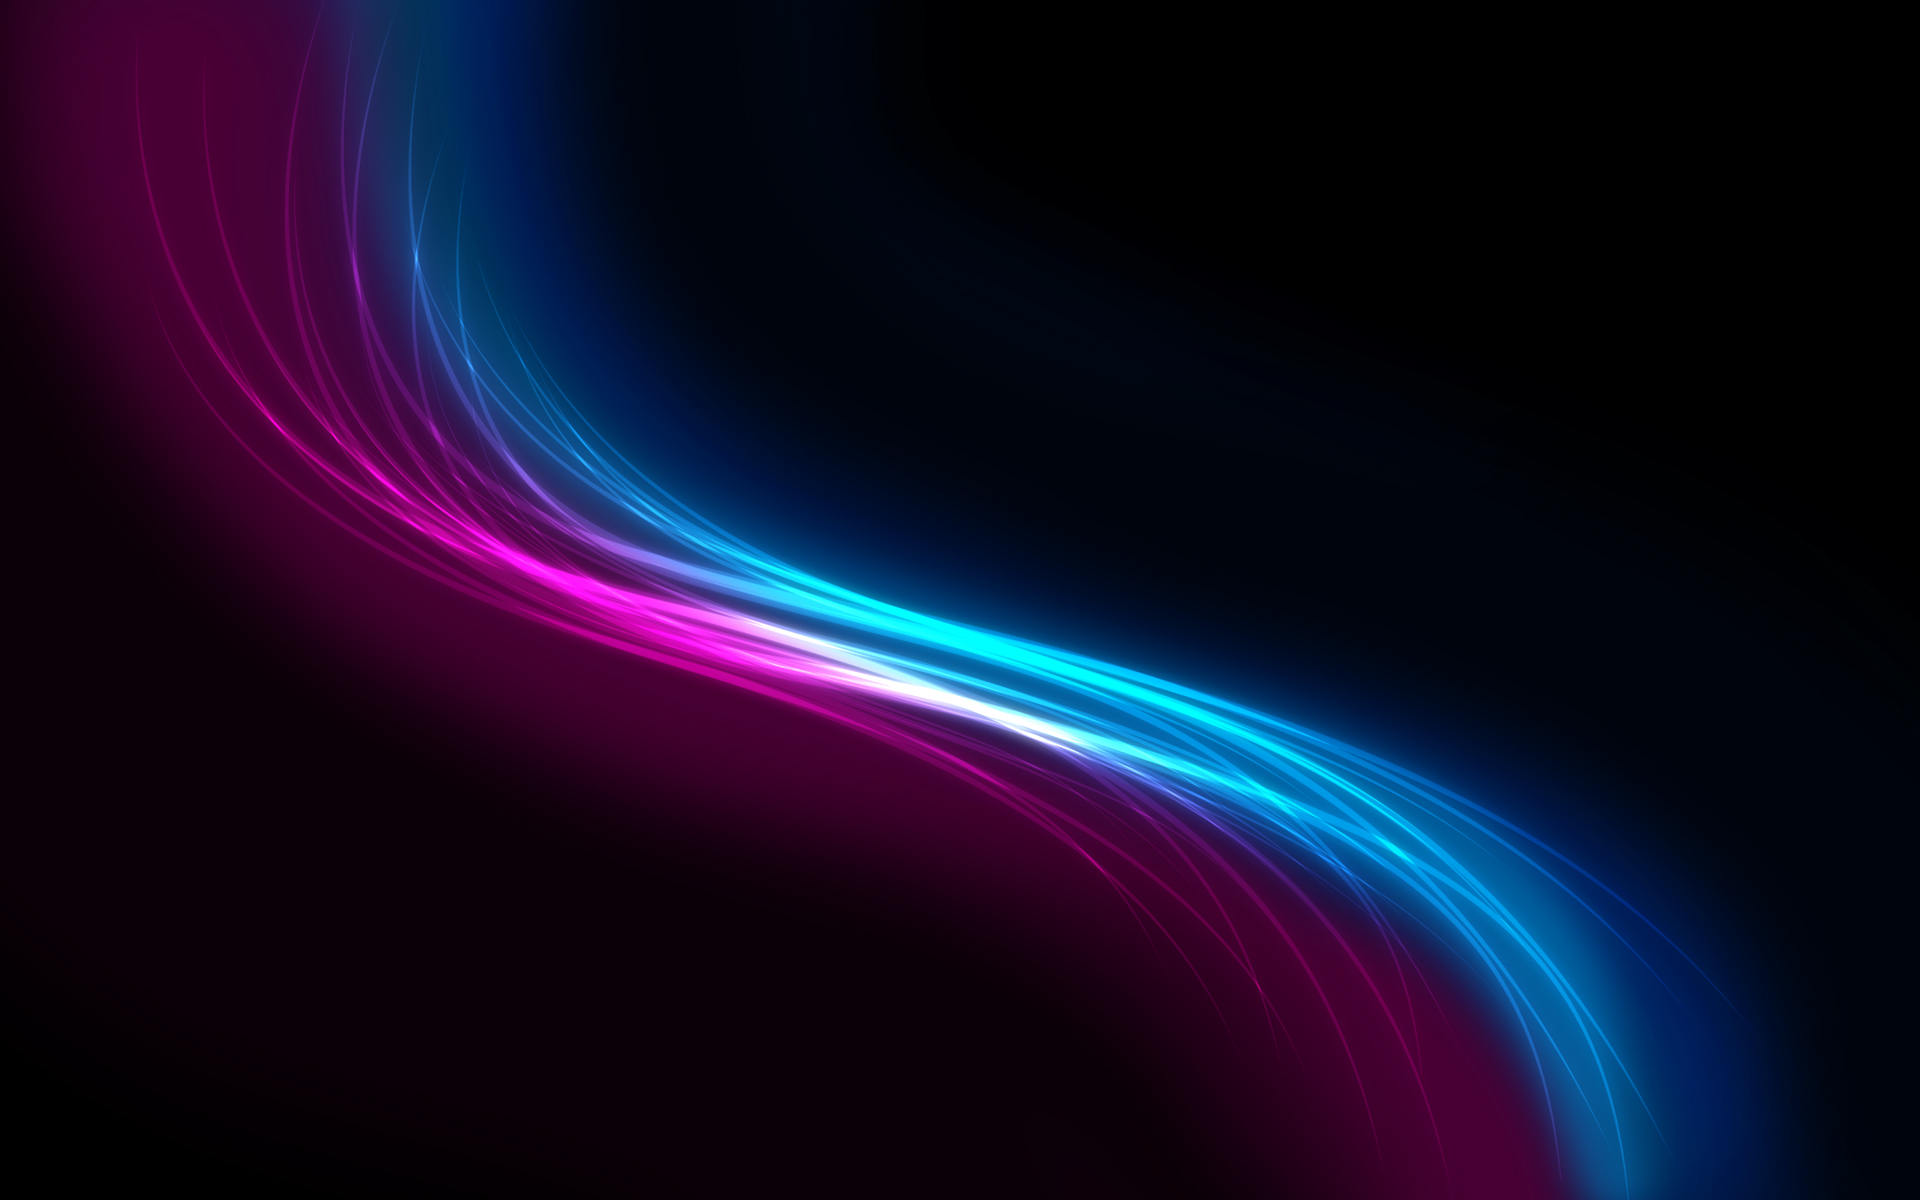 Free Download Dark Colors Abstract Wallpapers Hd Wallpapers